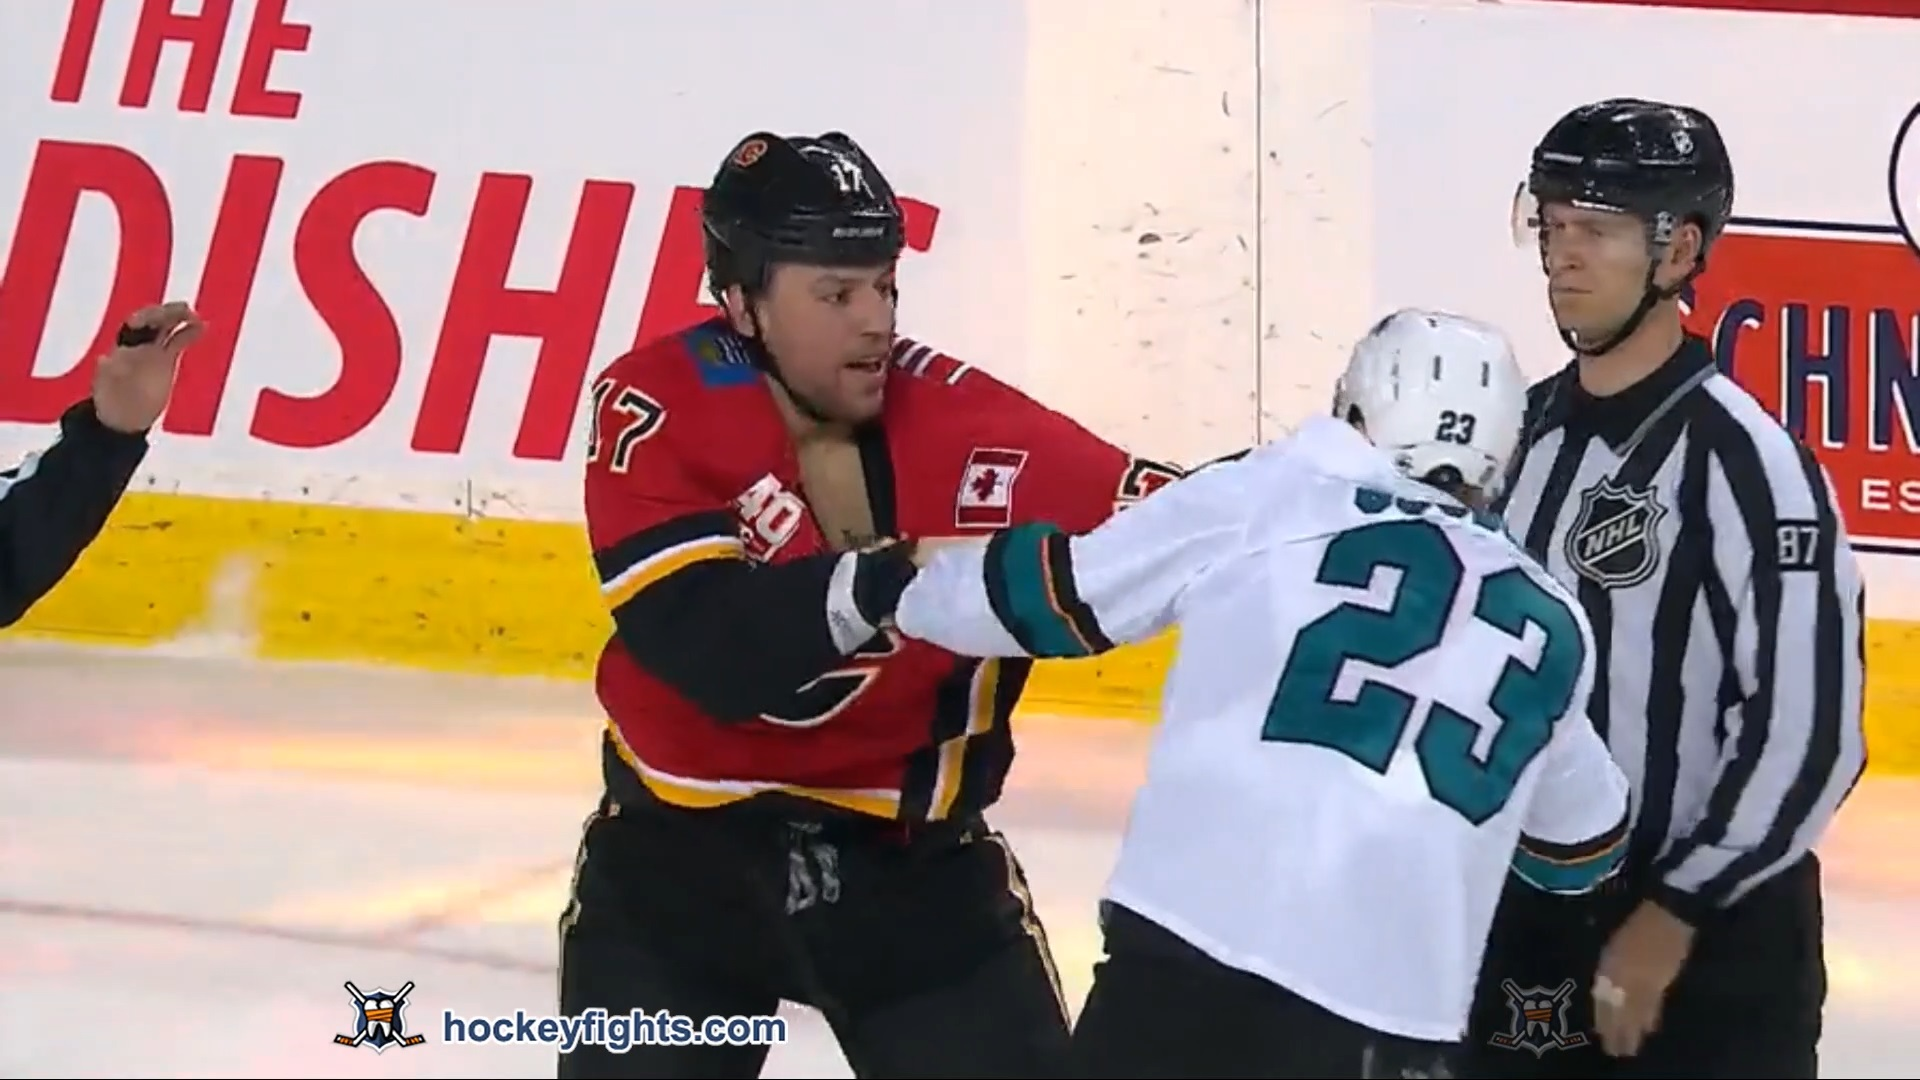 Milan Lucic vs. Barclay Goodrow